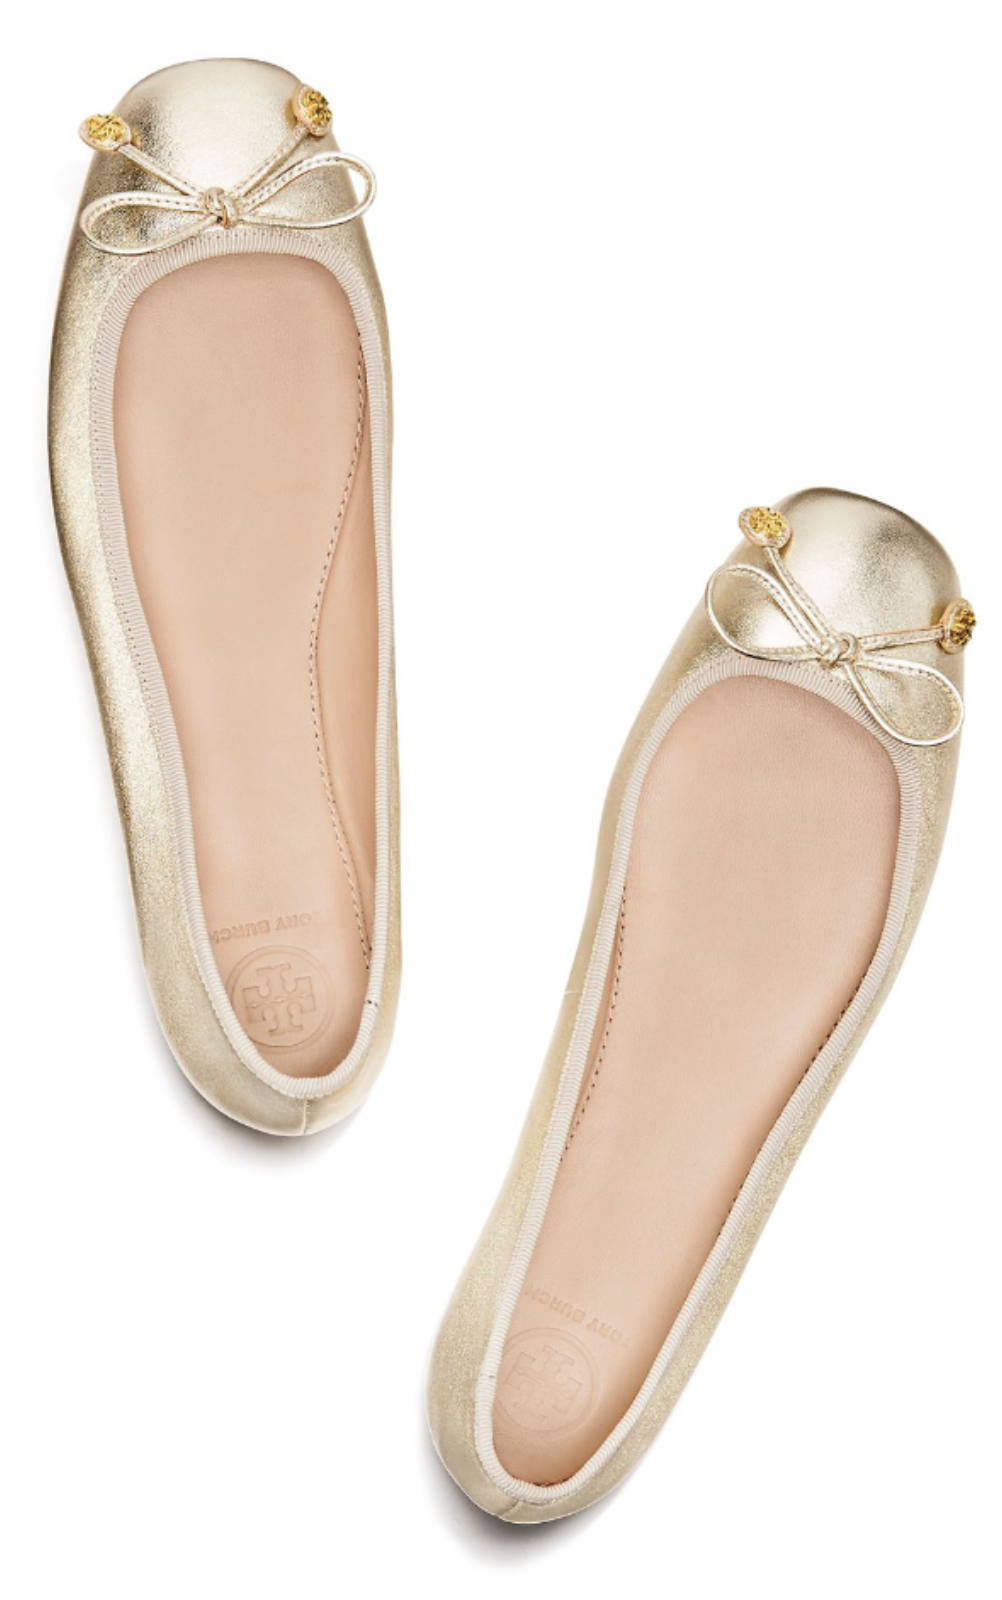 052842b7cc Tory Burch Laila Metallic Driver Ballet Flat | #InTheseShoes in 2019 ...